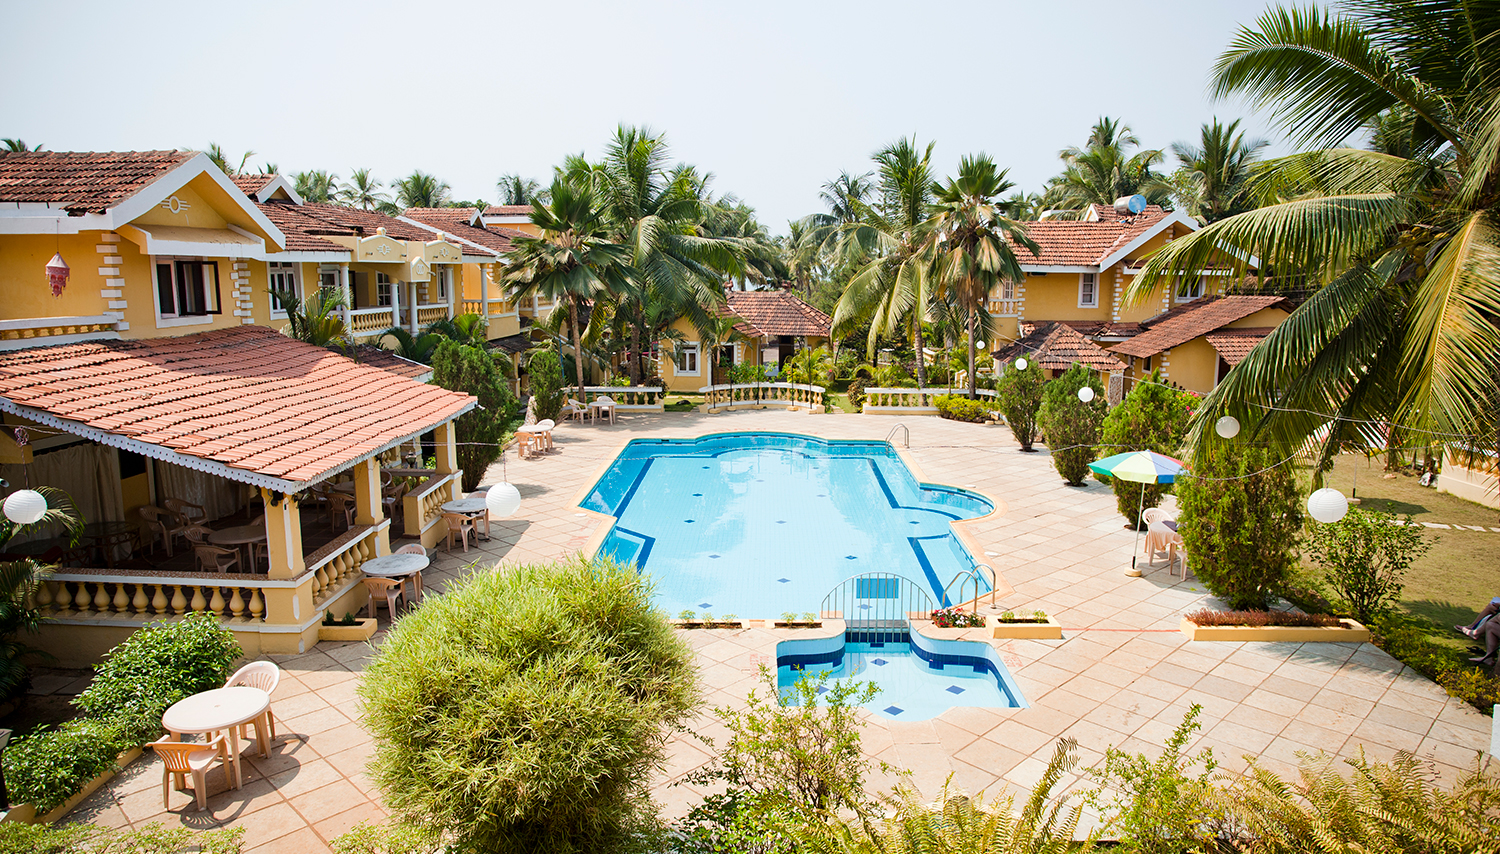 Pifran Holiday Beach Resort viesnīca (Goa, Indija)